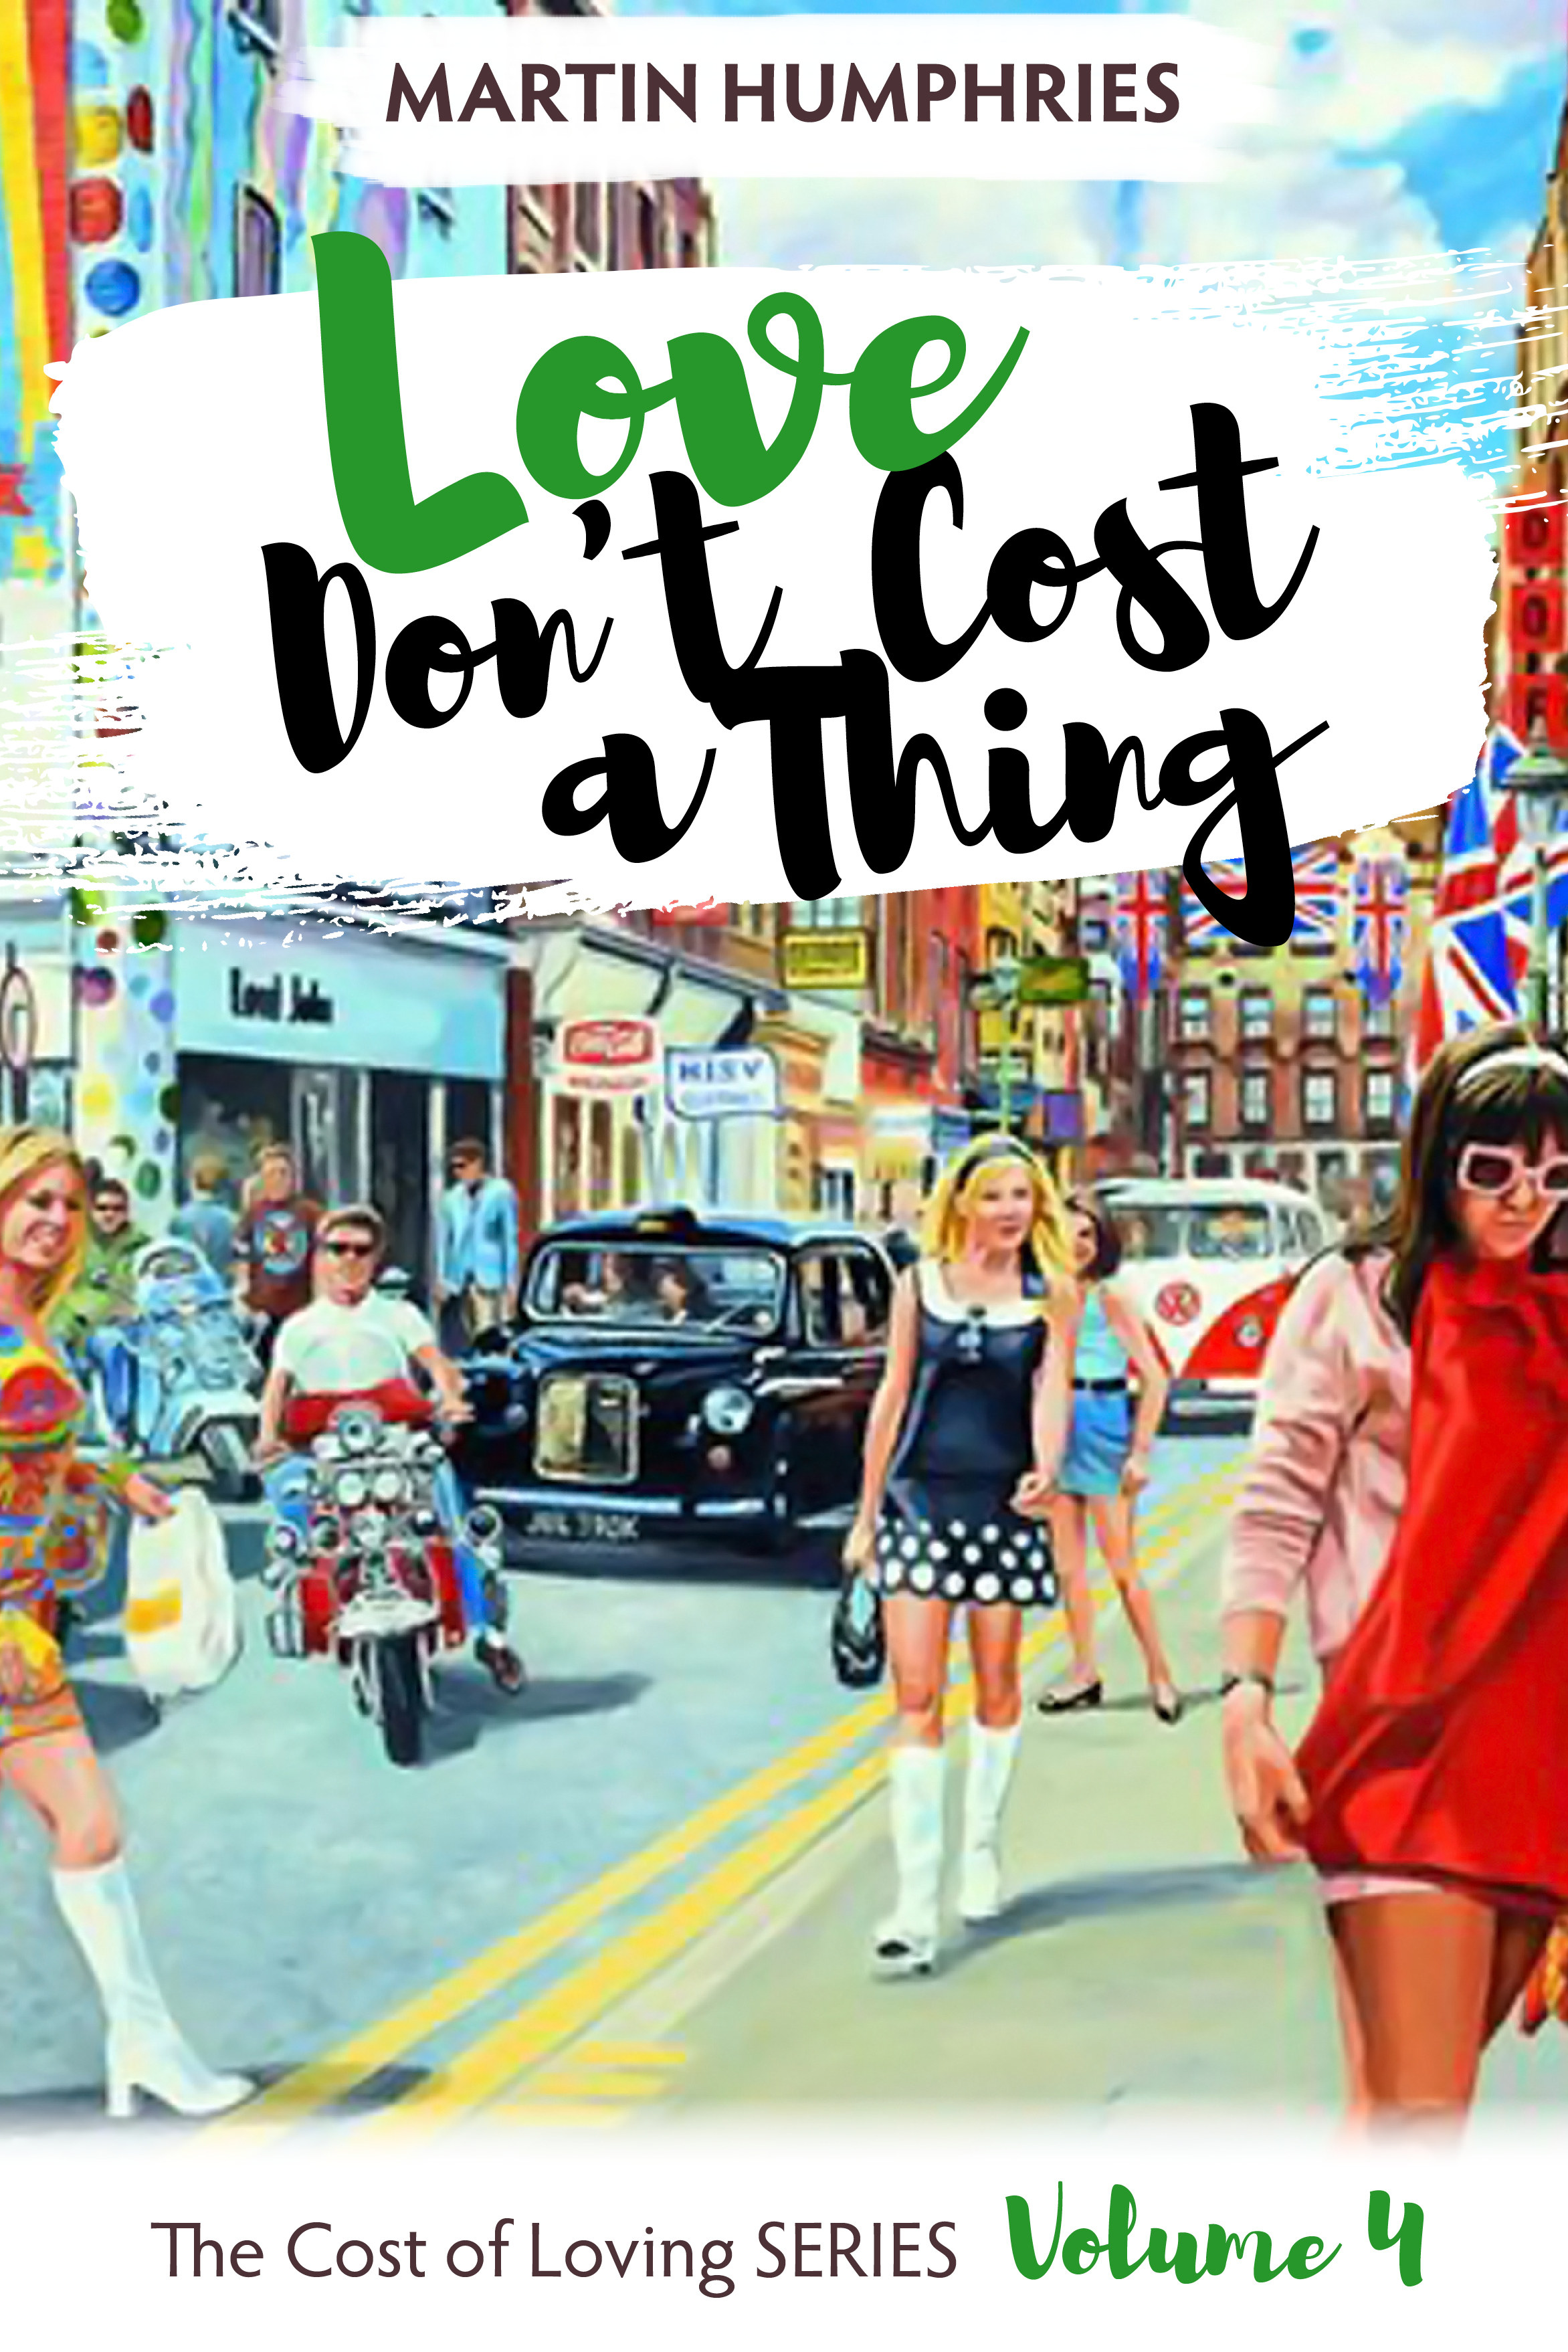 Volume 4 - Love Don't Cost a Thing  Sophia's and Toby's stars are in ascendency as they visit America to meet with a leading Hollywood producer who has been impressed by Toby's on-screen charisma. It's a hugely exciting time for them both and they revel in the thrill of it all. L.A. dazzles them, a new young man catches Toby's eye, and the fun of sunny Southern California begins to take a firm hold. Sophia has the chance to meet up with her cousin, Norma, who is still loving her Hollywood life, although it has become complicated. She enlists Sophia's help to unravel it, but will it all end in tears – or worse? Along the way, Sophia learns far more about the victims of the Vietnam War than she would prefer to, and is forced to take action of her own to protect some of them. As if that wasn't enough, someone from Sophia's past comes back from the dead, while Toby has enemies of his own to destroy before they destroy him. There are so many battles to fight. Who wins? Who loses? And at what cost?